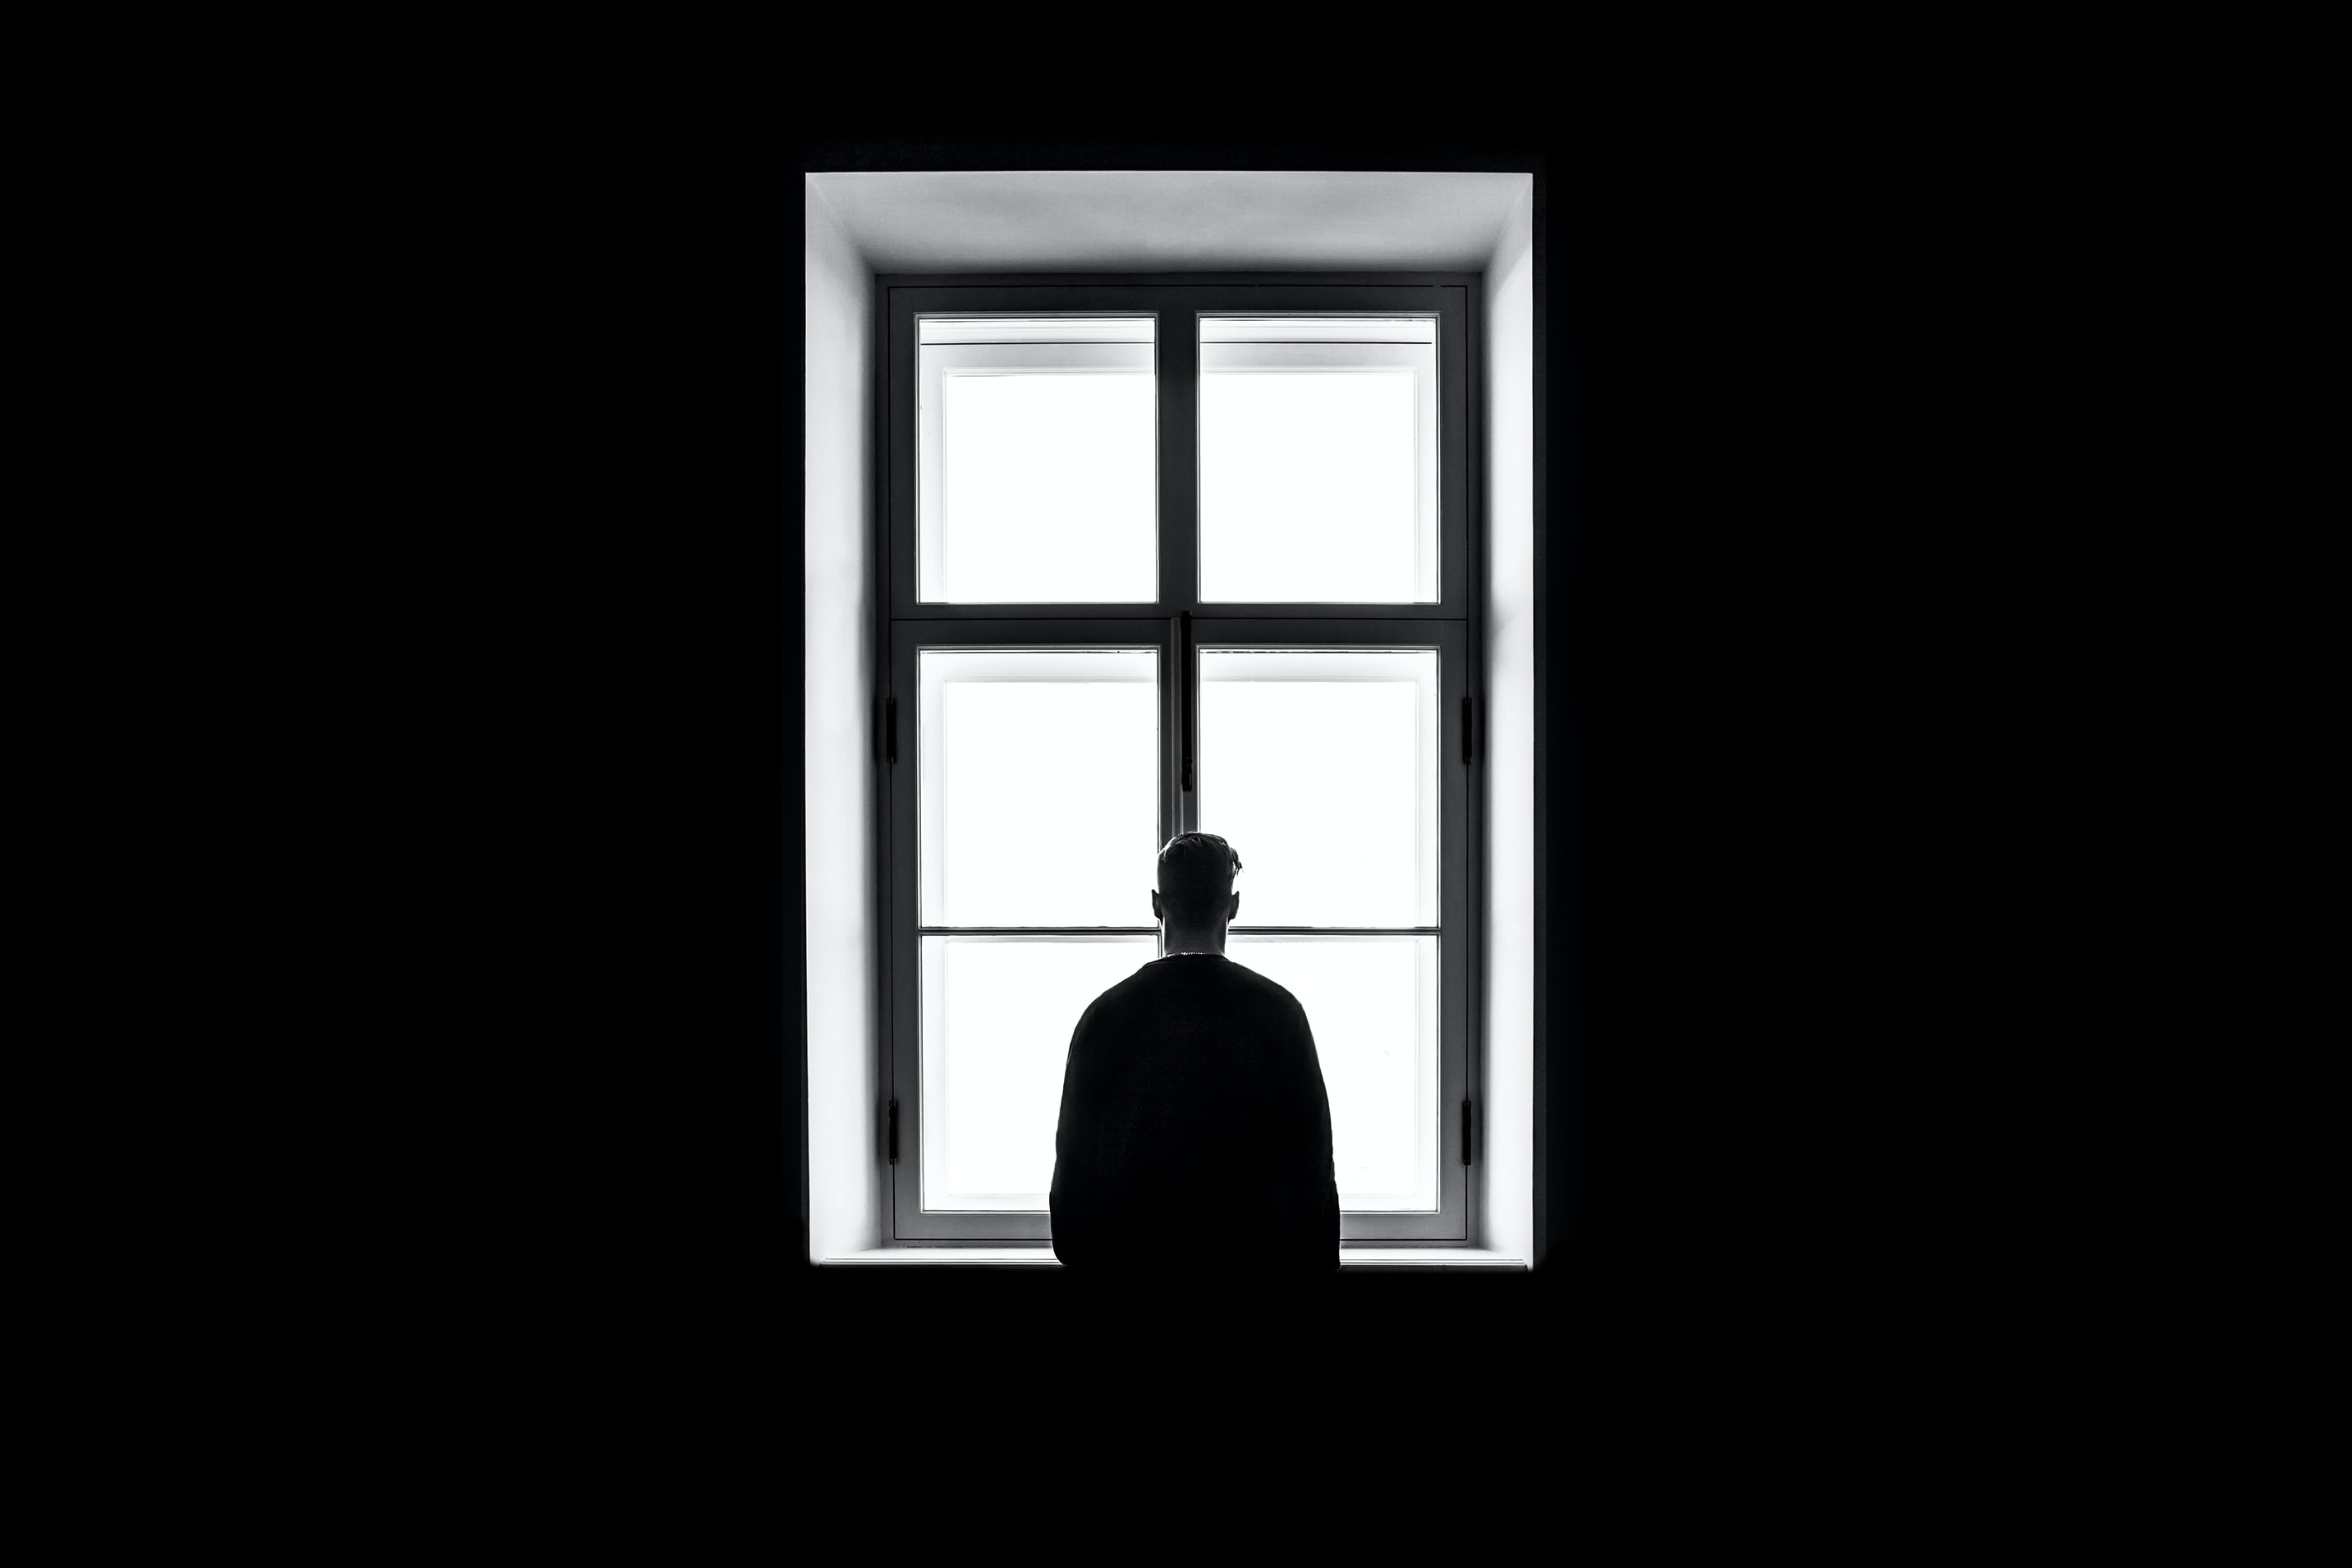 500 Depression Wallpapers Hd Download Free Images On Unsplash